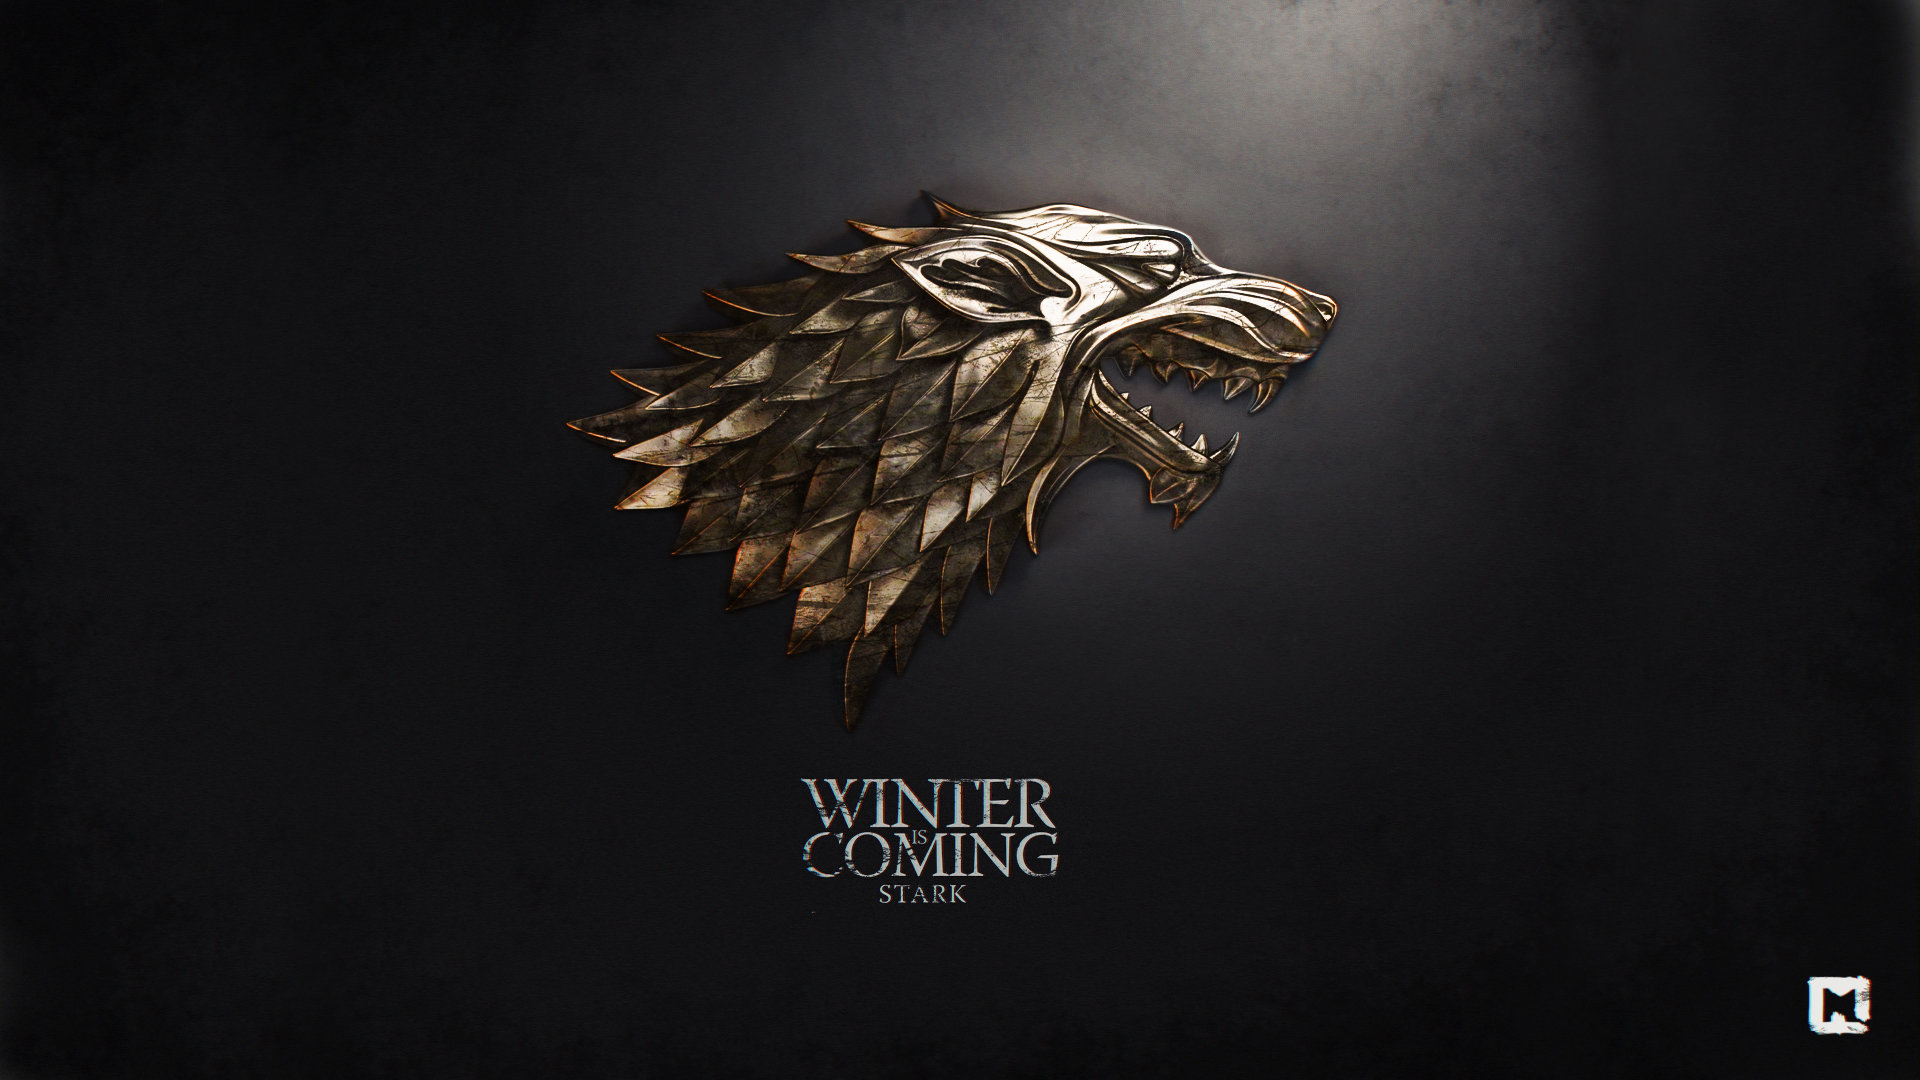 Game Of Thrones wallpapers 1920x1080 Full HD 1080p desktop 1920x1080